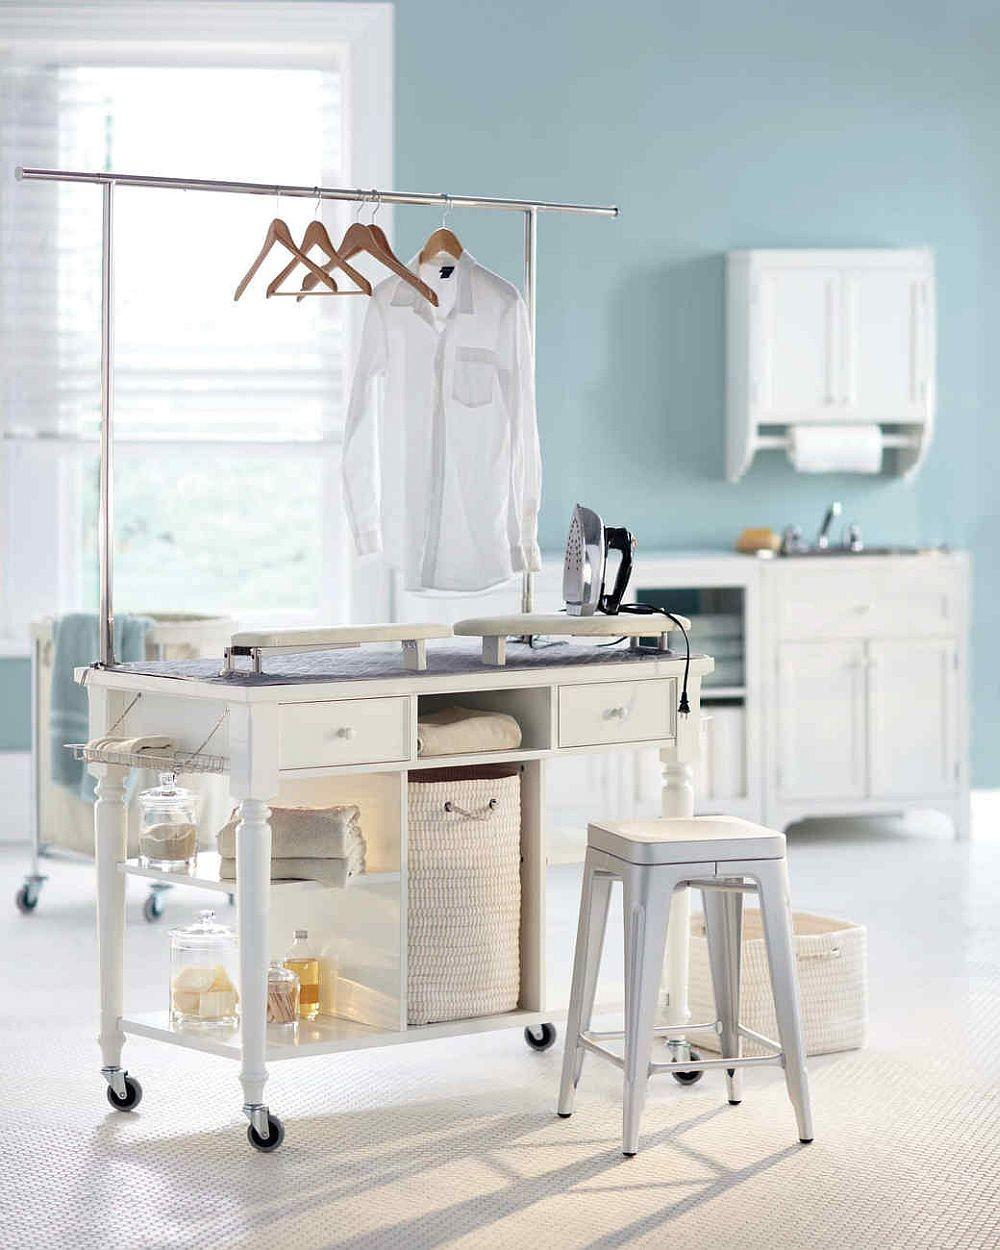 Laundry Room Carts Mobile Space Savvy Ways